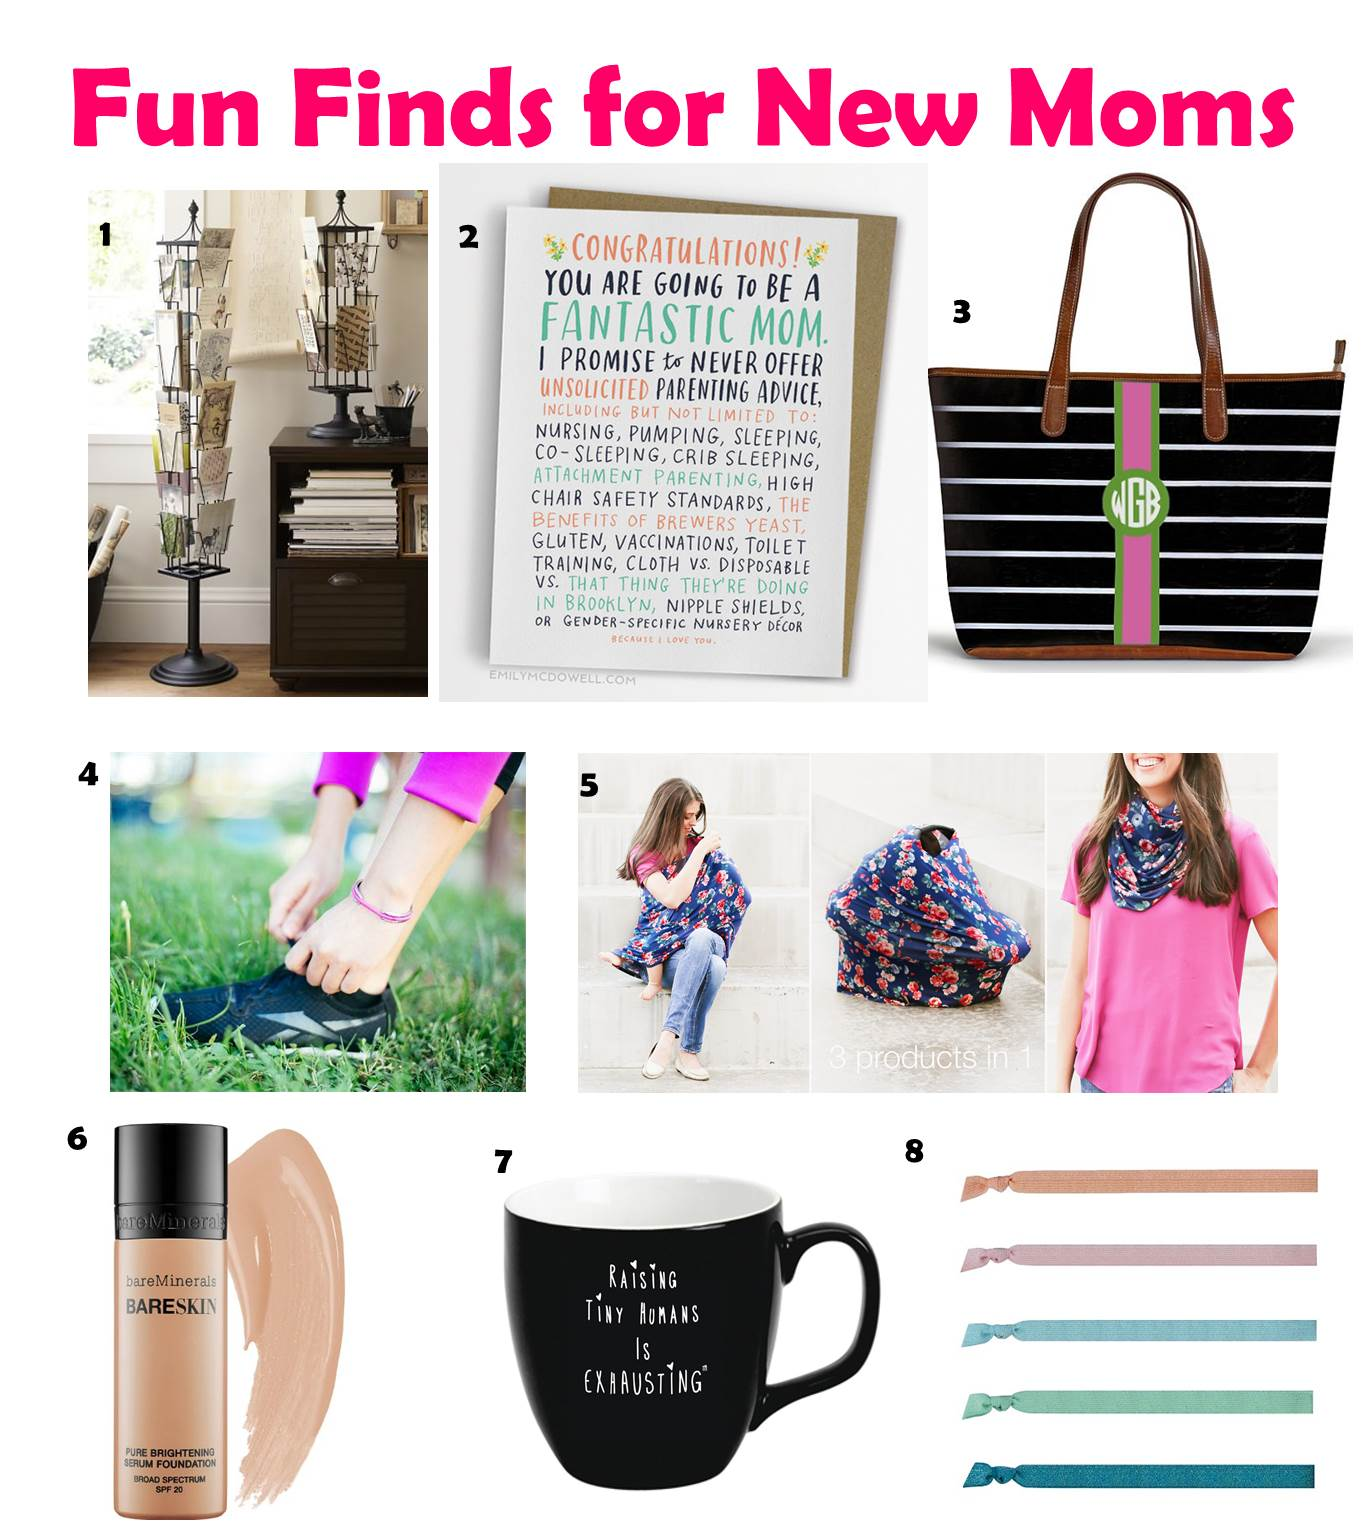 Fun Finds for New Moms